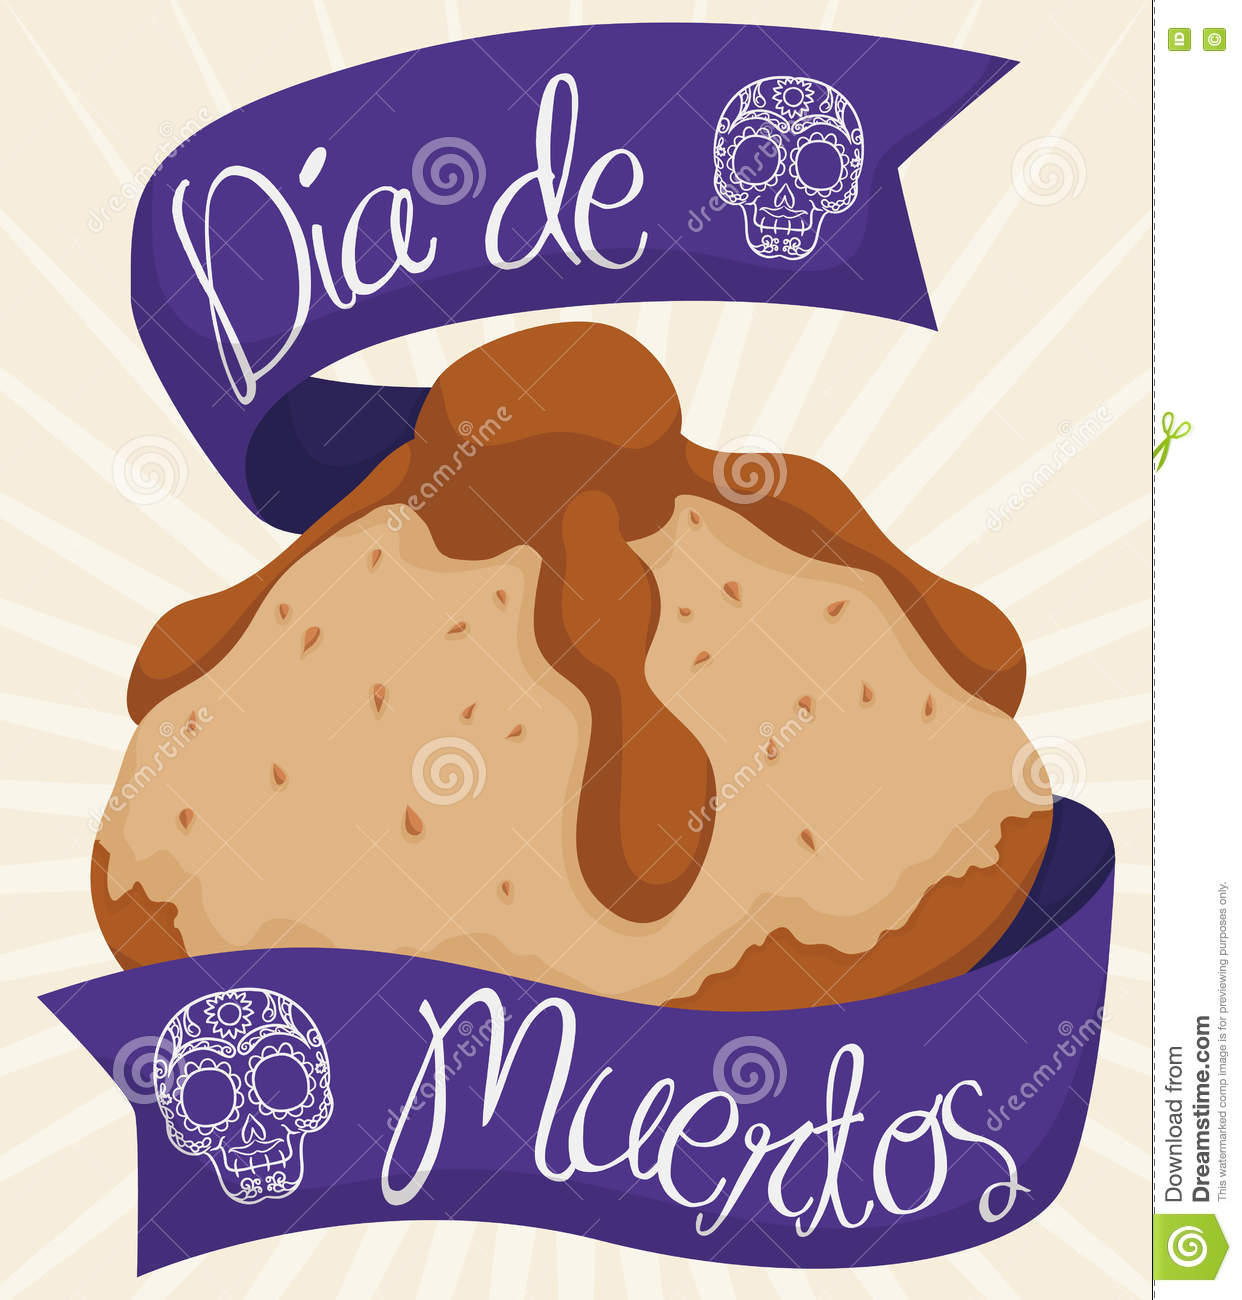 Dead bread with greetings ribbons celebrating dia de muertos bread of the dead to celebrate mexican dia de muertos translate from spanish day of the dead with purple ribbons around it and traditional skulls m4hsunfo